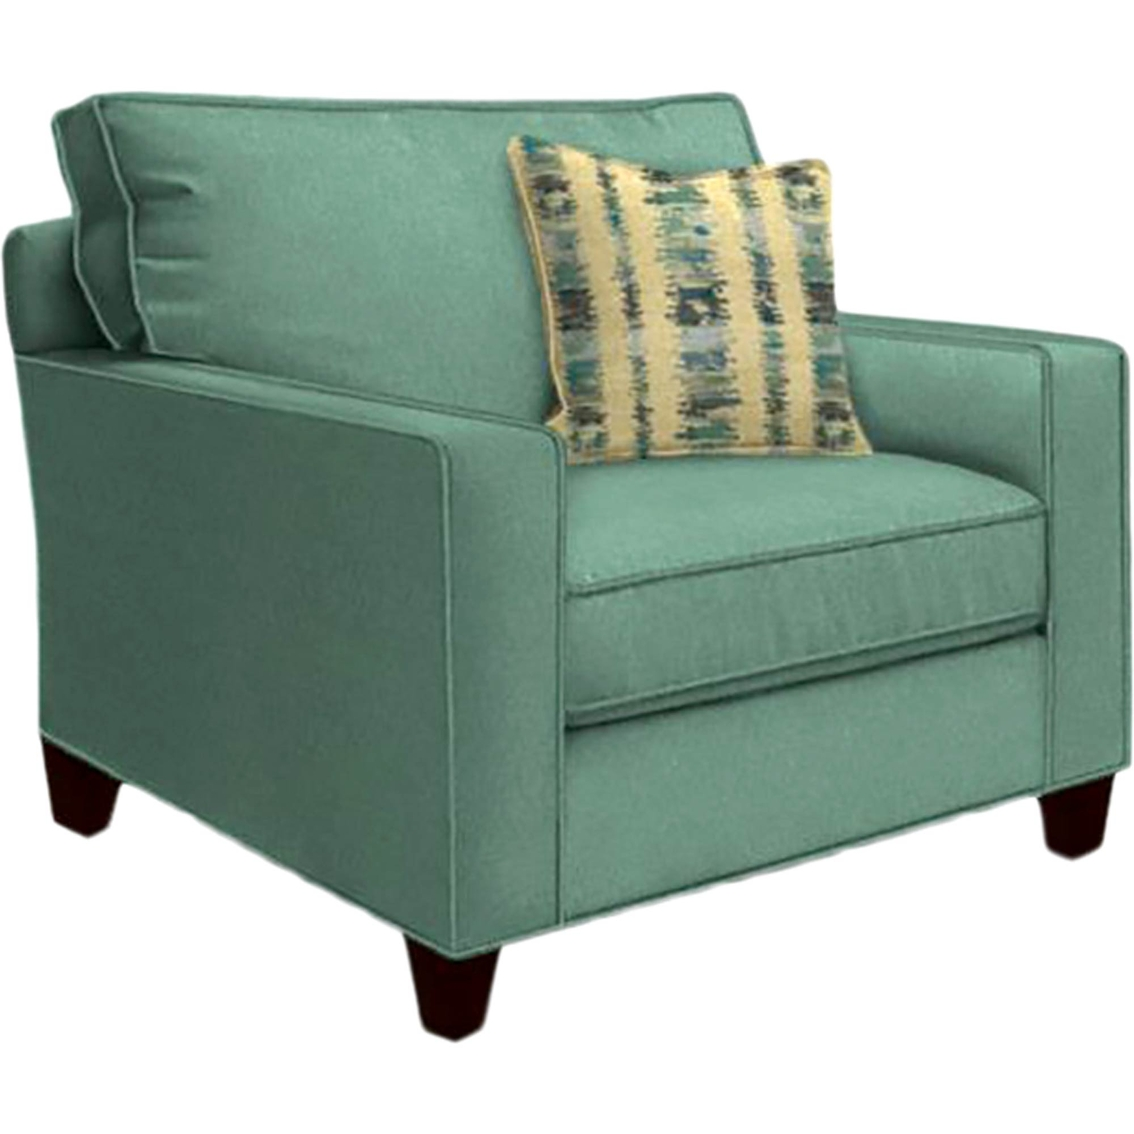 Hgtv Home Design Studio By Bassett Track Arm Chair And A Half